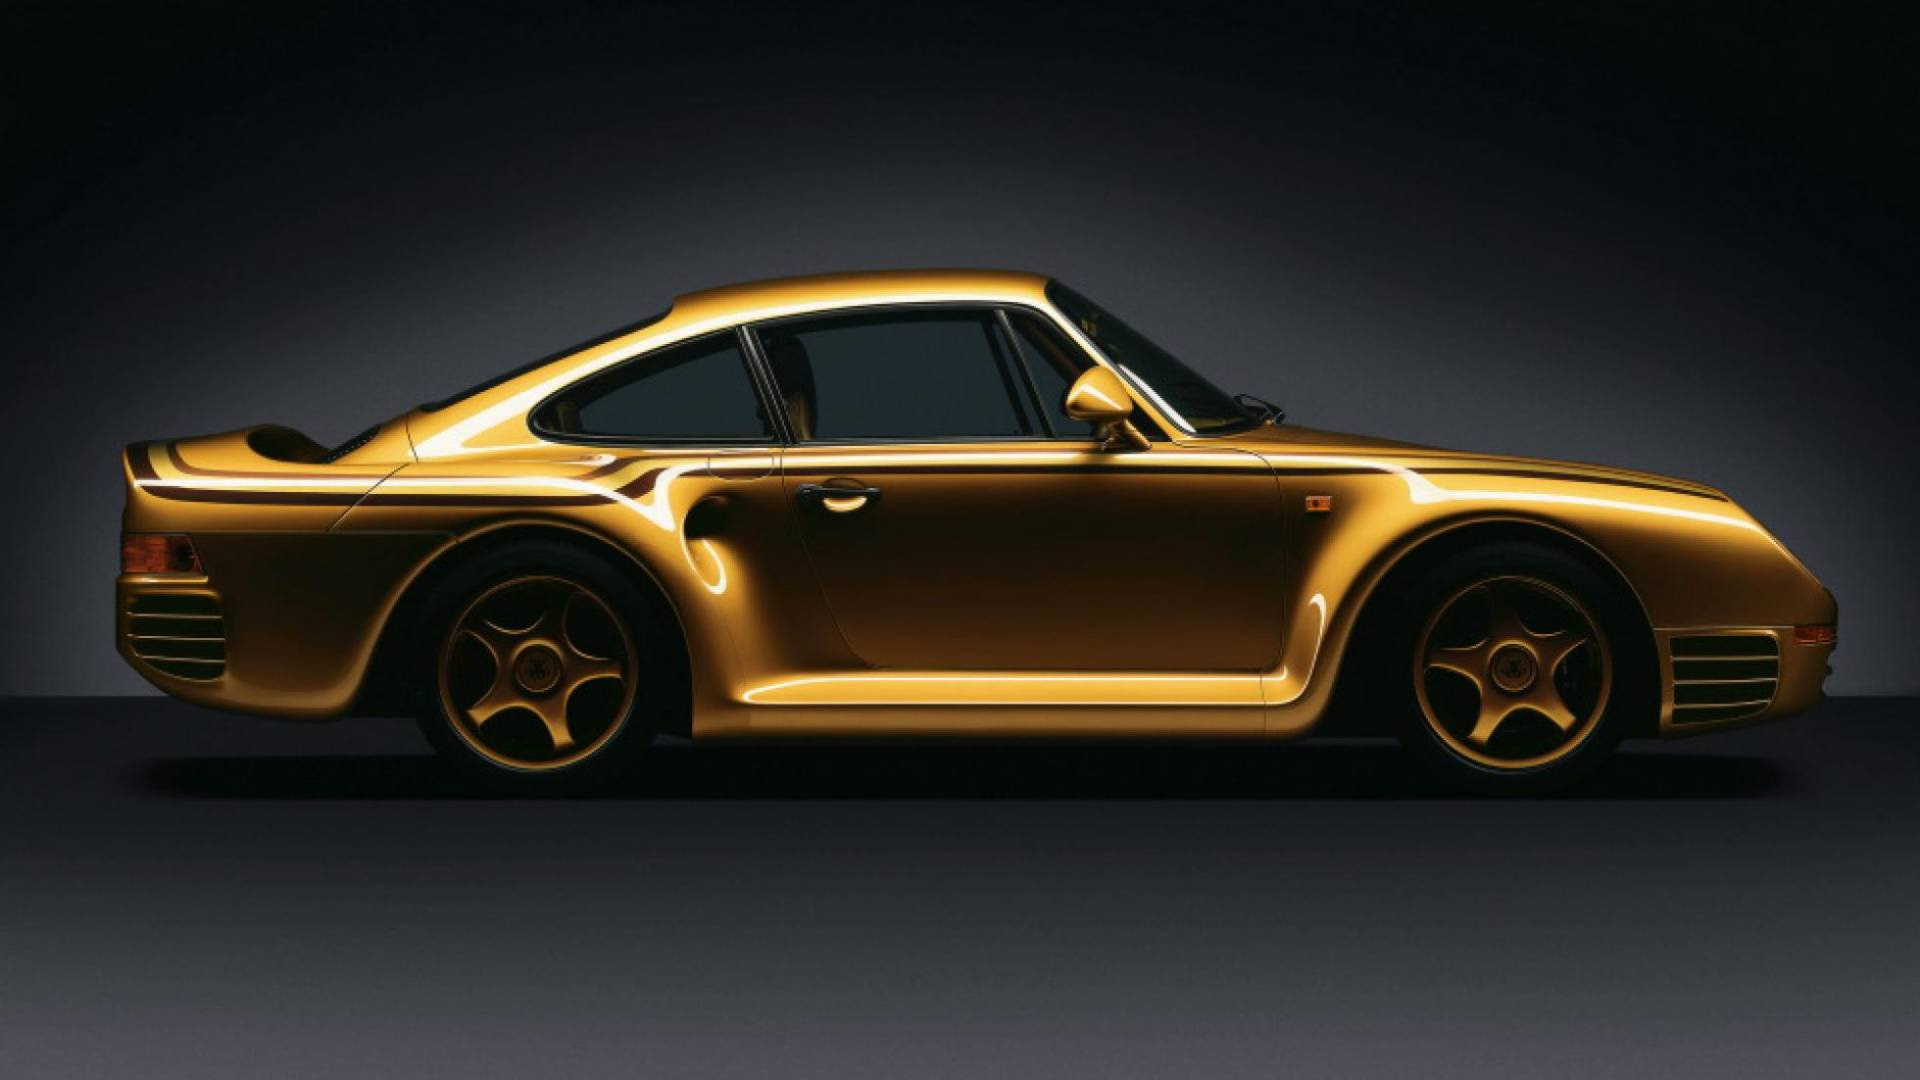 0c261cb1-porsche-exclusive-959-in-gold-built-for-arab-prince-9